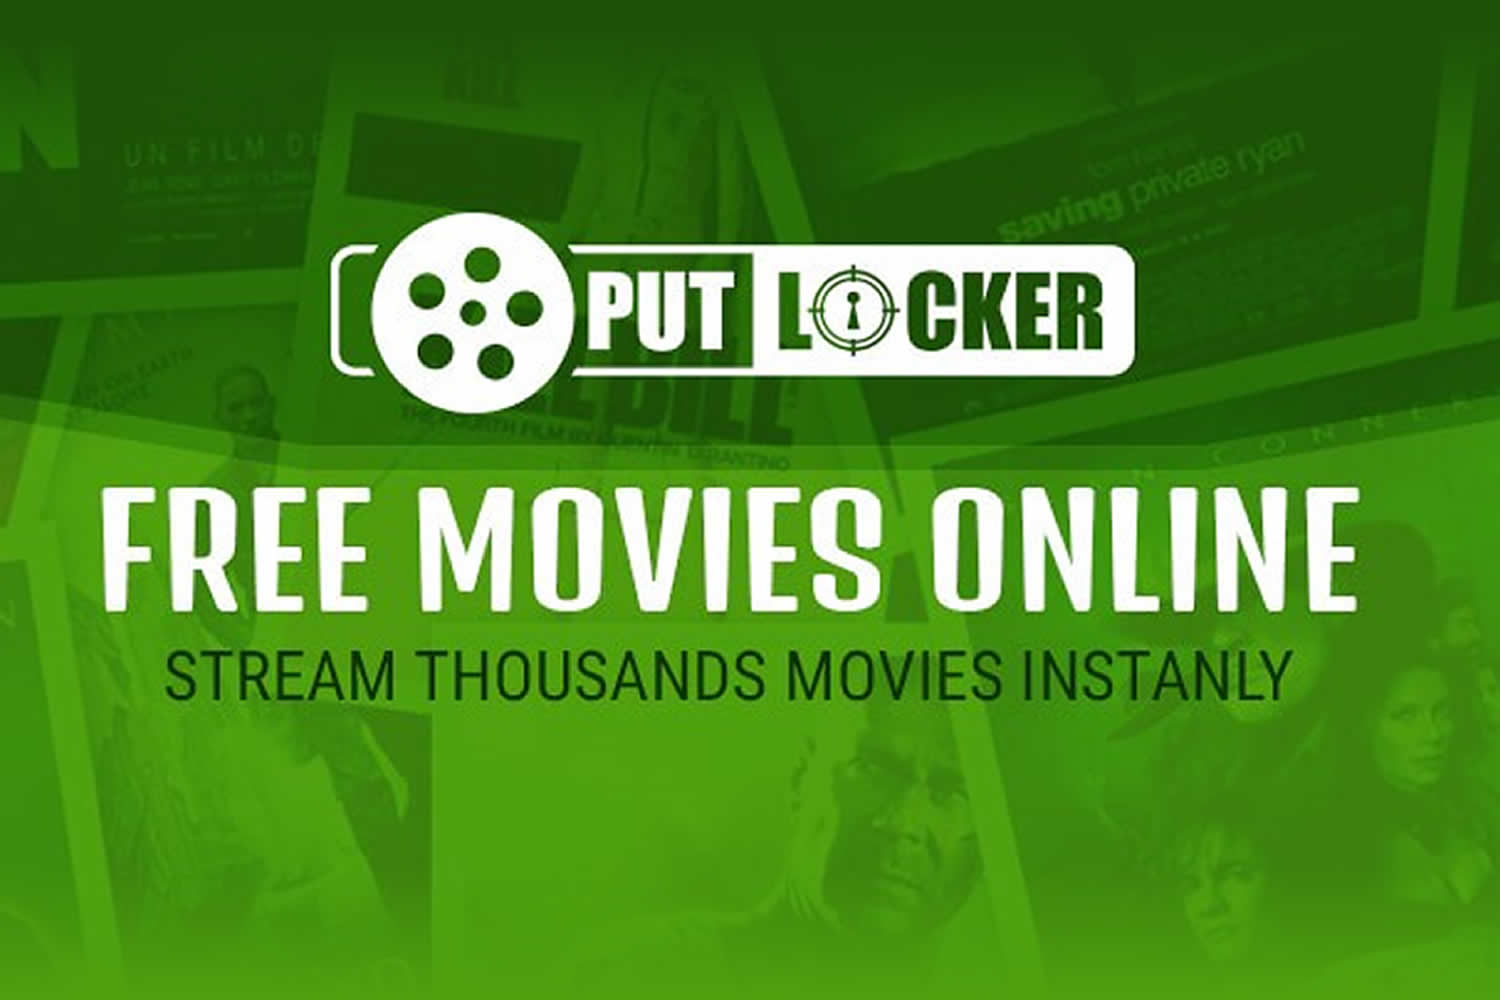 Watch In Love with Alma Cogan Putlocker Movies